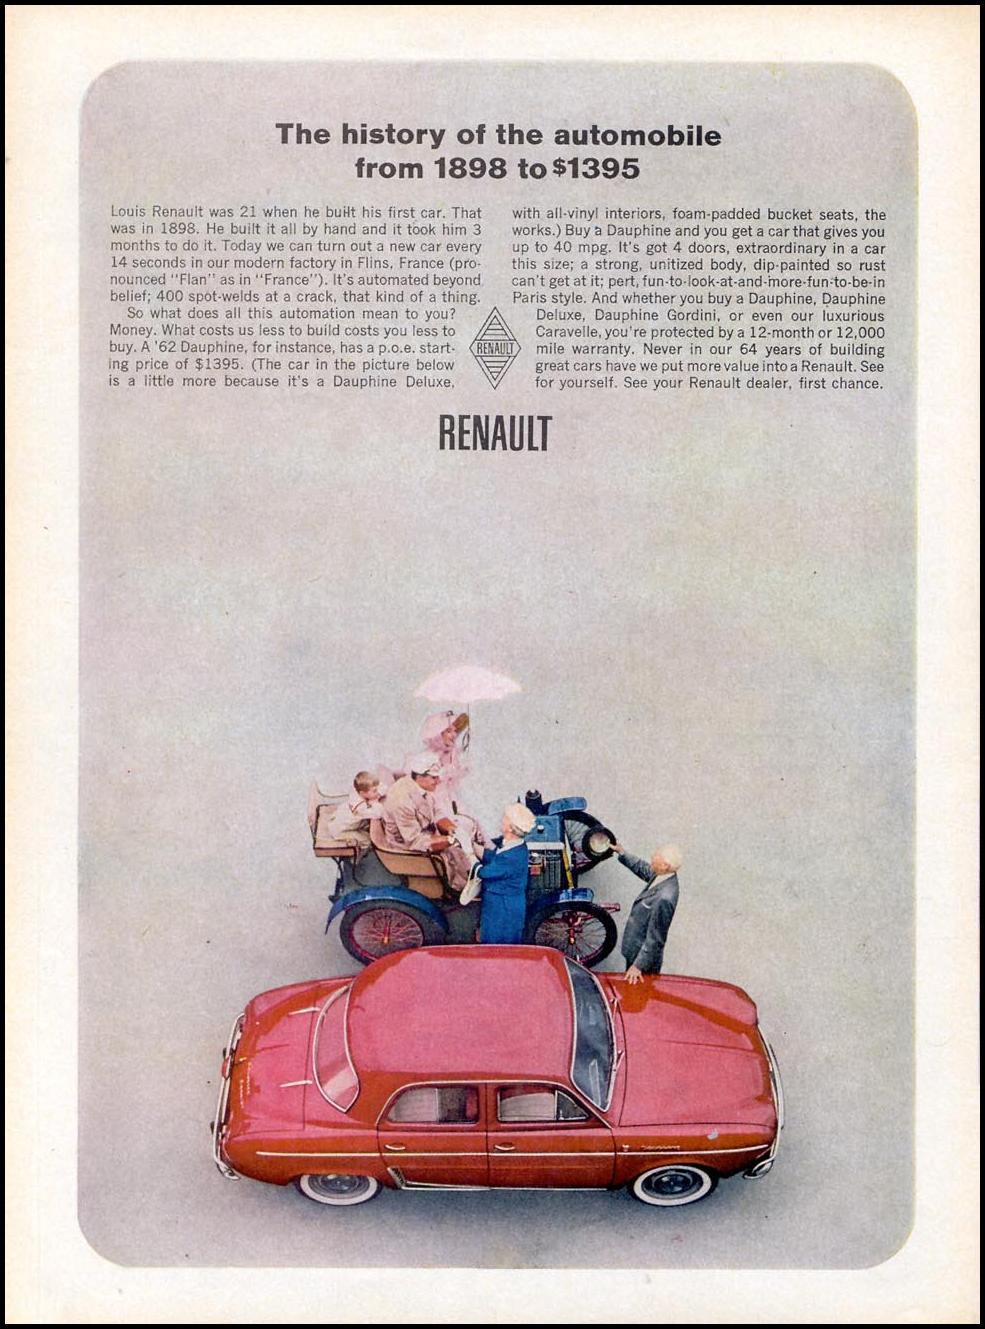 RENAULT AUTOMOBILES TIME 07/13/1962 p. 60